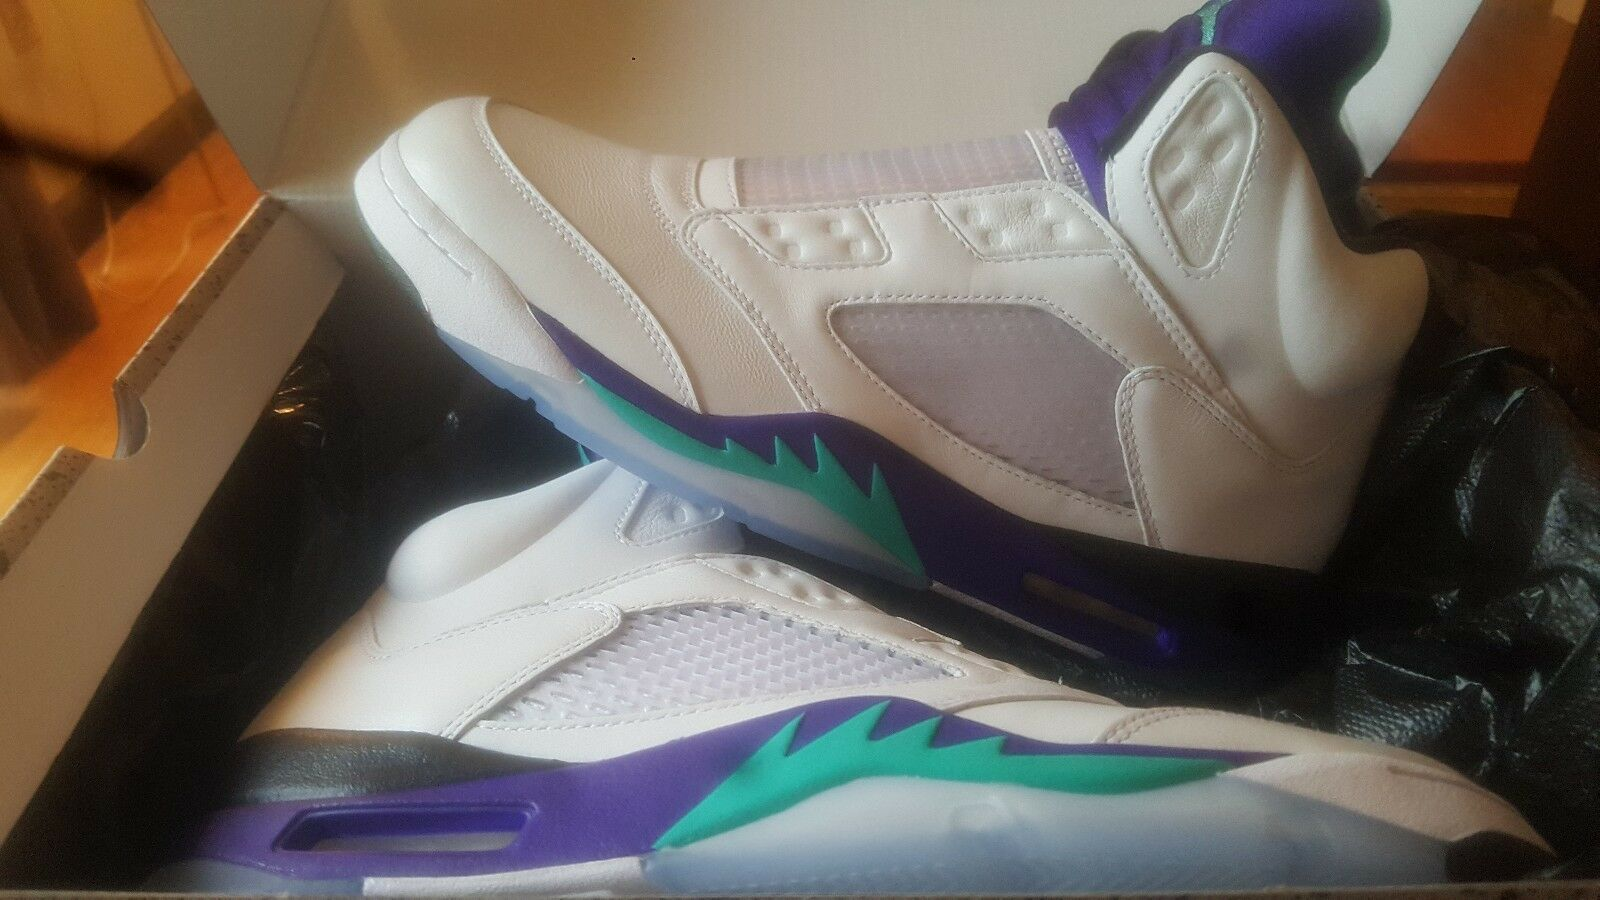 4708a145f92 Nike Jordan 5 Grape Fresh Prince White Purple Will Smith SIZE 12 Get em now  Air nxdbnd1688-Athletic Shoes